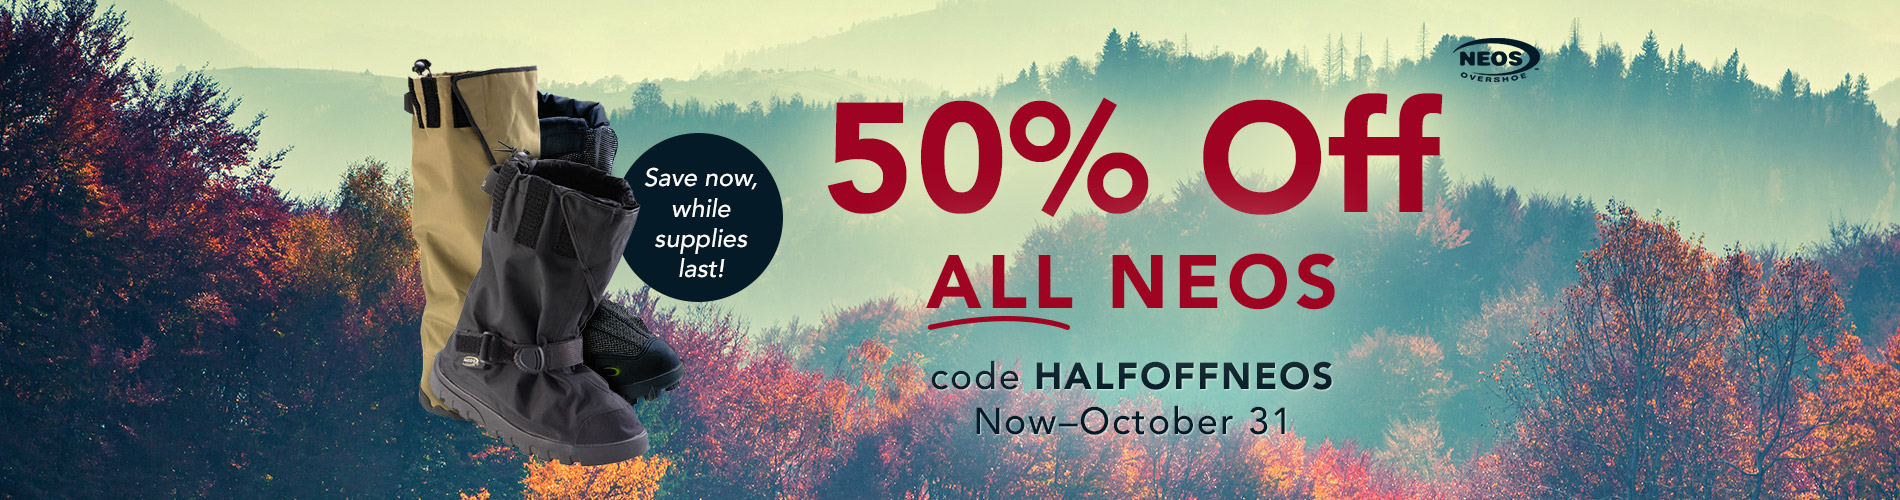 50% Off ALL NEOS Overshoes with code HALFOFFNEOS now through October 31. Save now, while supplies last.